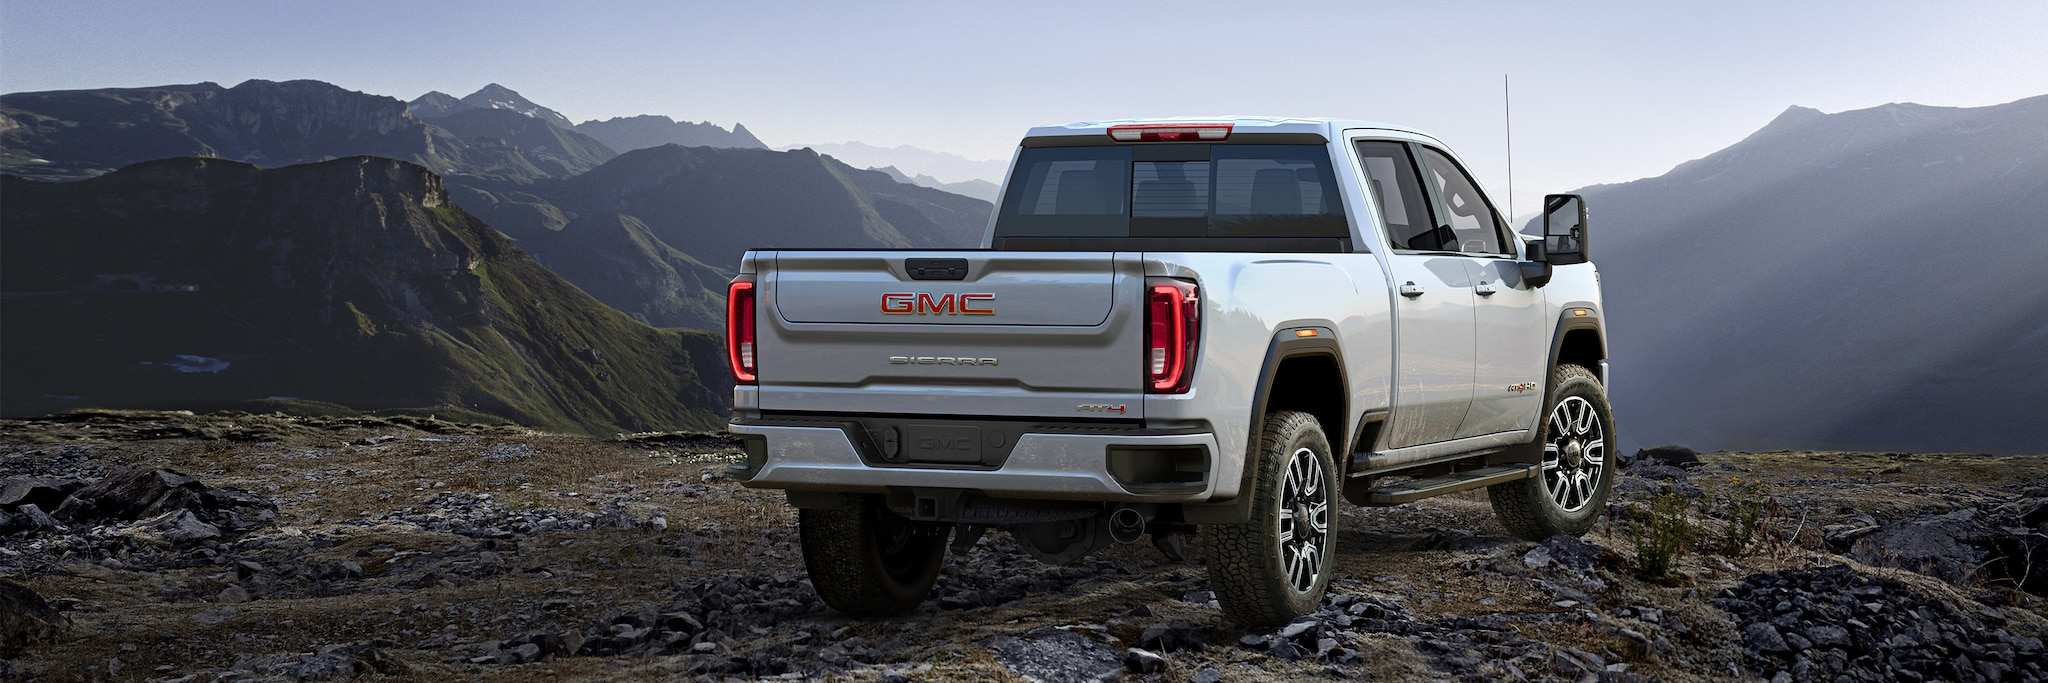 81 Gallery of Release Date For 2020 Gmc 2500 First Drive with Release Date For 2020 Gmc 2500